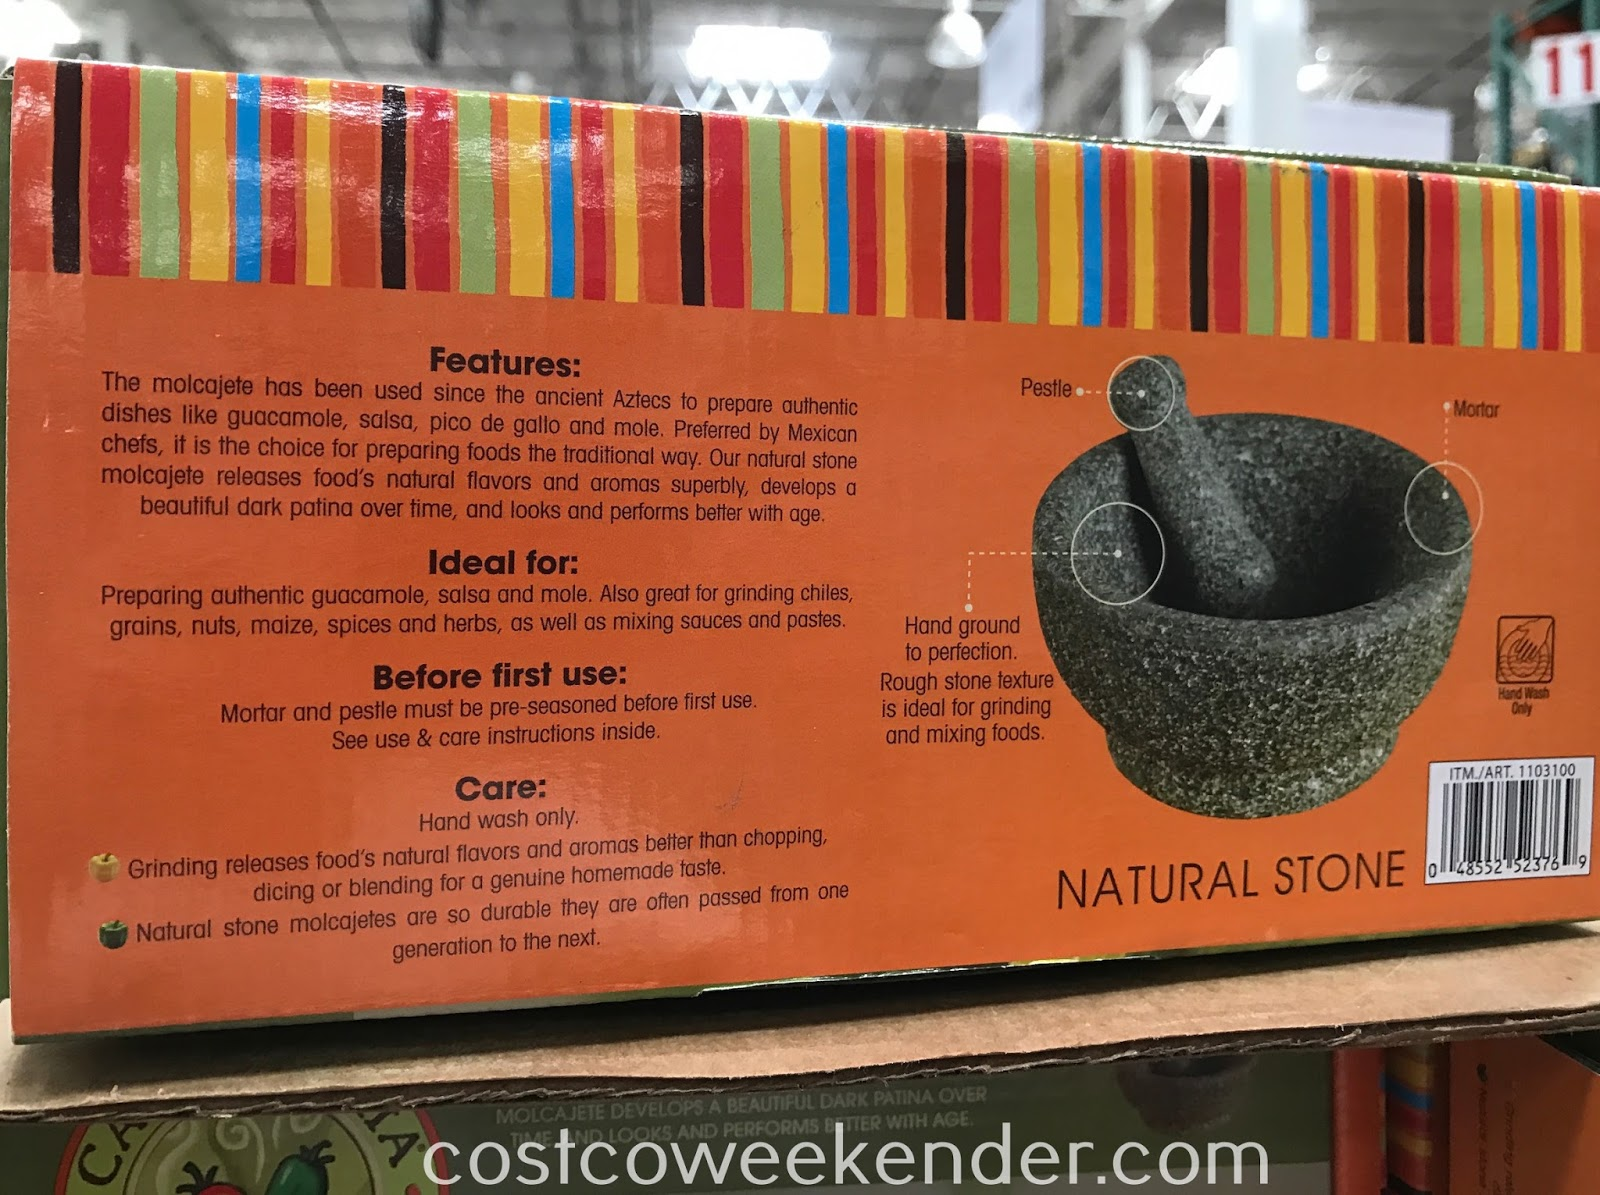 Costco 1103100 - Casa Maria Mortar and Pestle: practical and rustic-looking for your kitchen